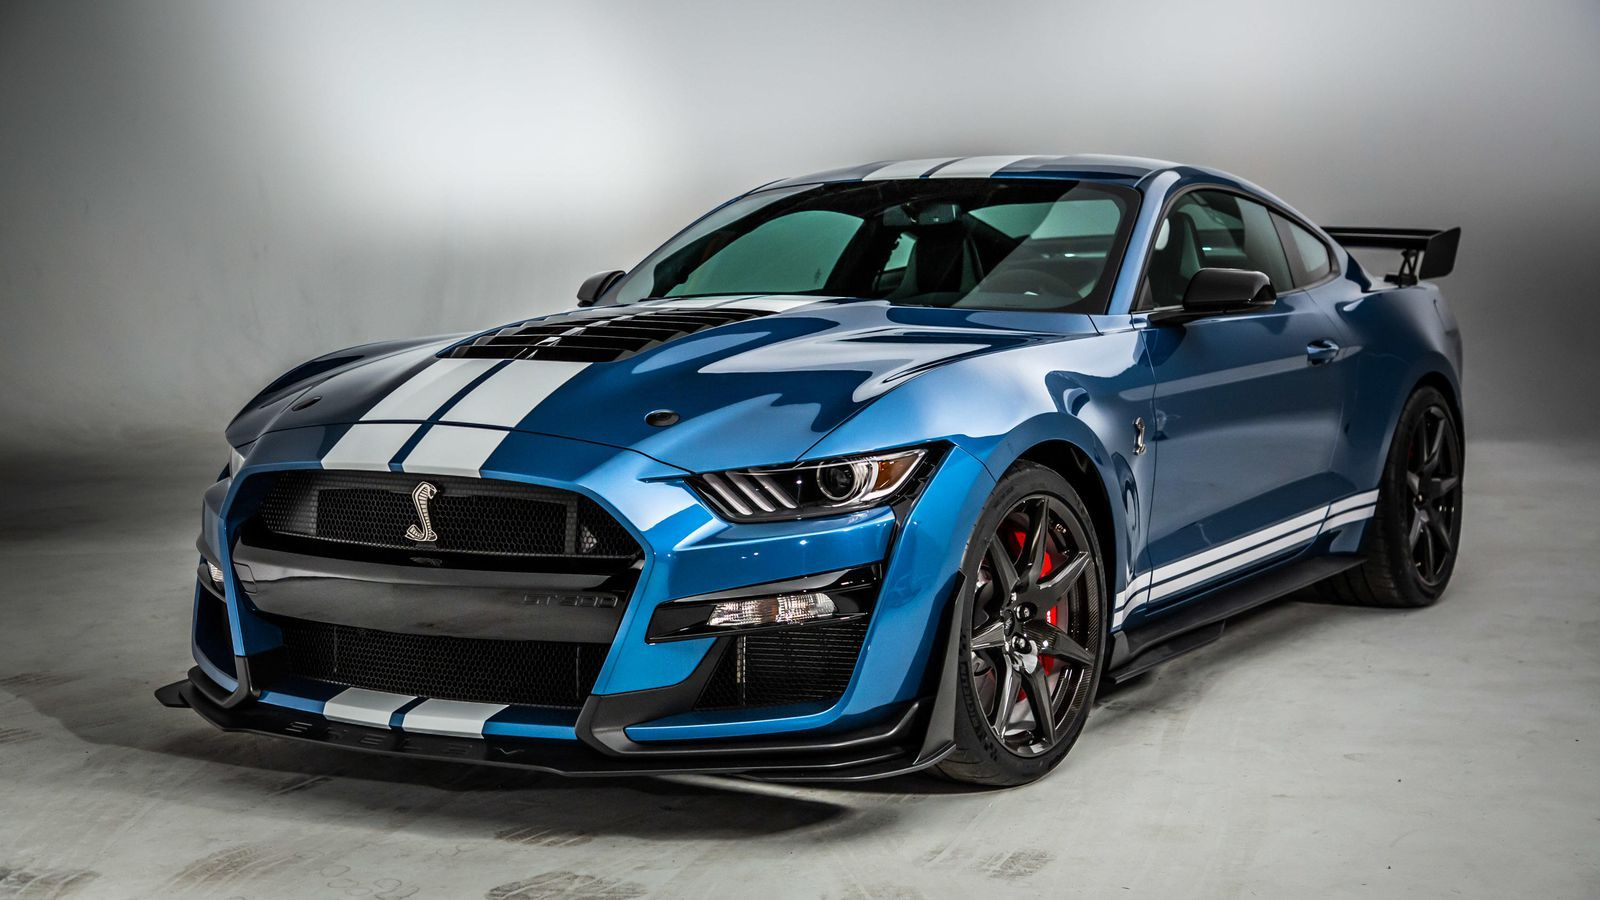 Ford Mustang Shelby gt500 760hp 2020